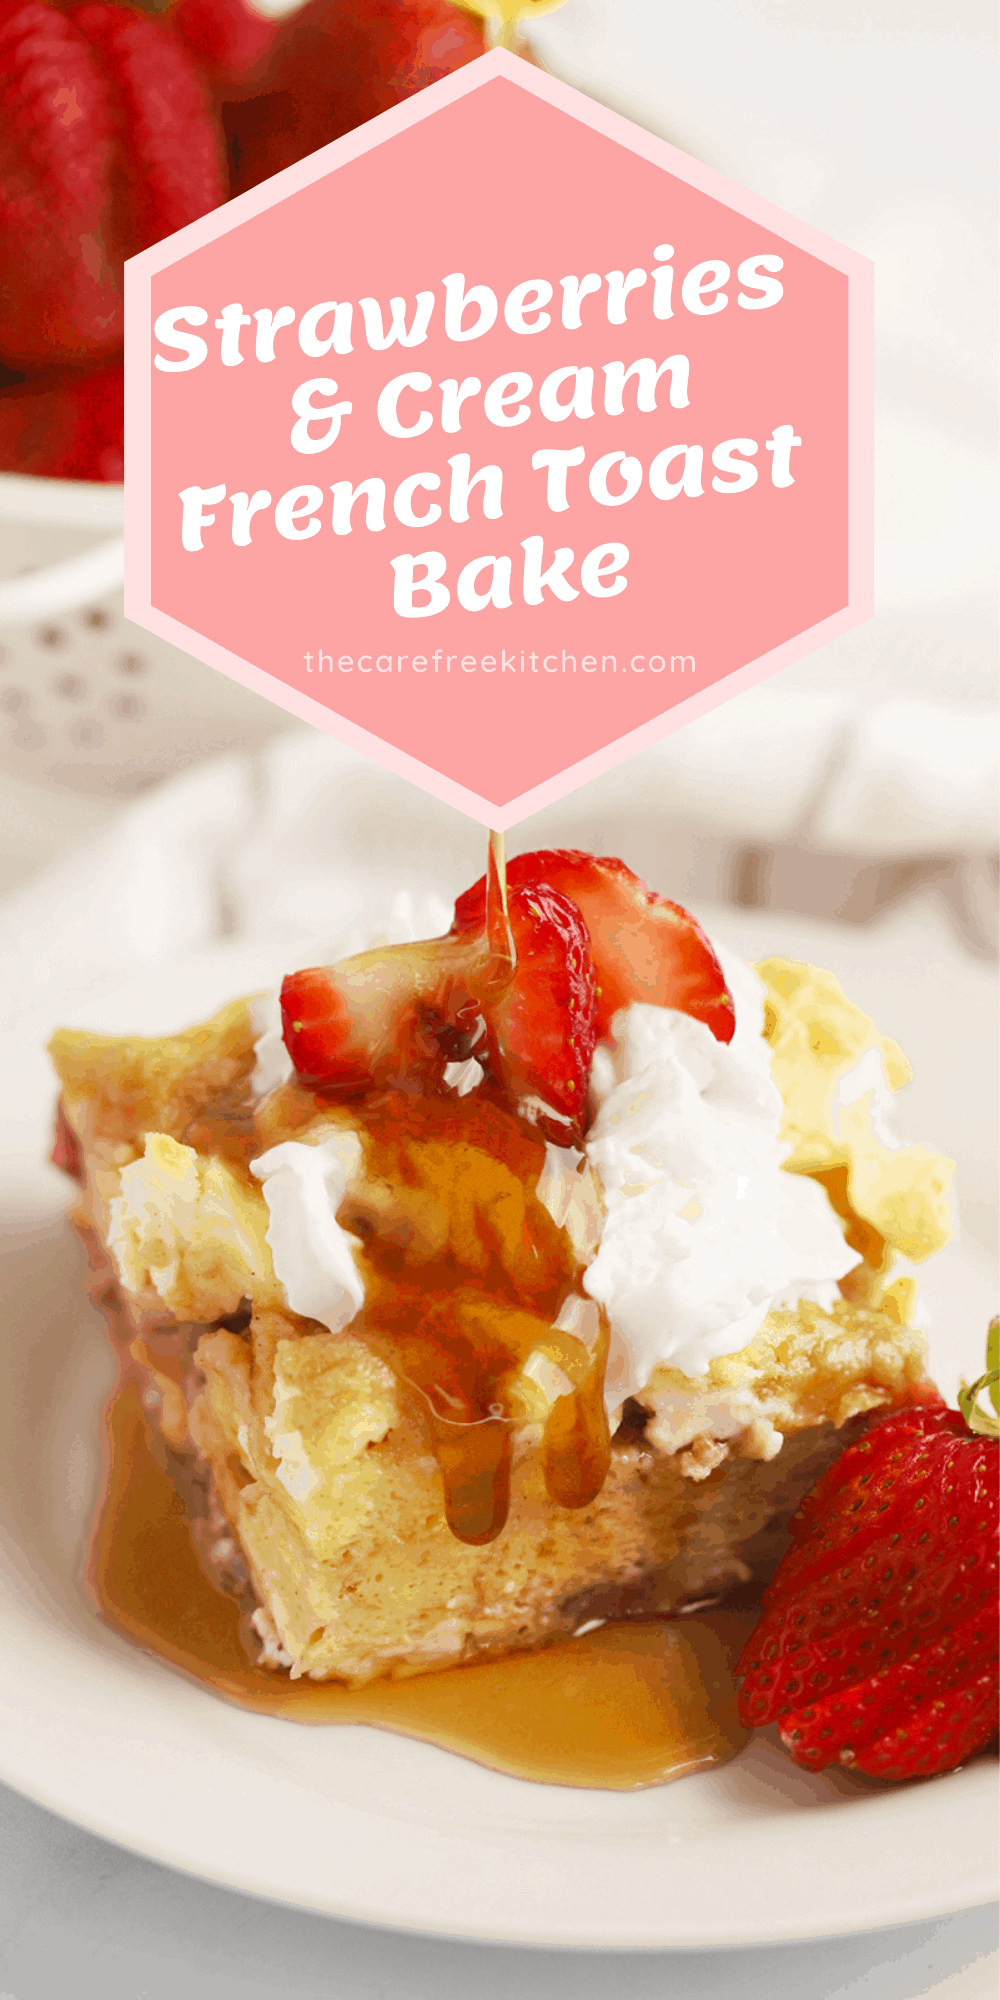 Pinterest pin for Strawberries and Cream French Toast Bake.